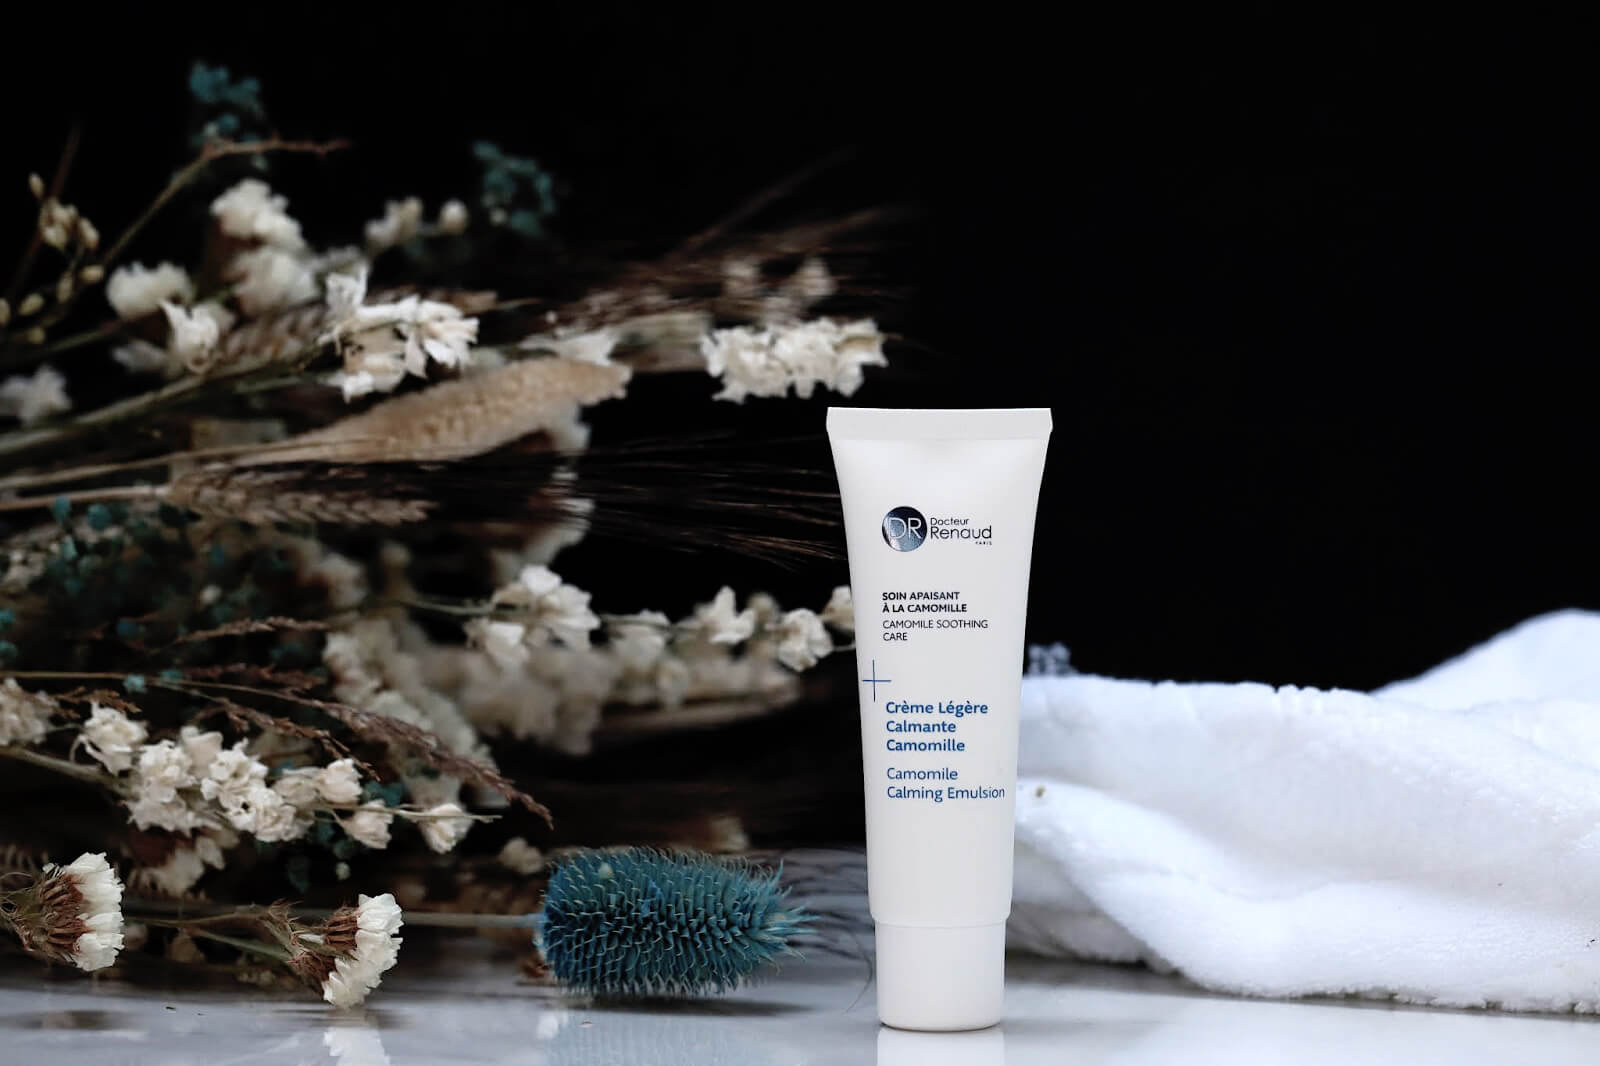 dr renaud creme camomille avis